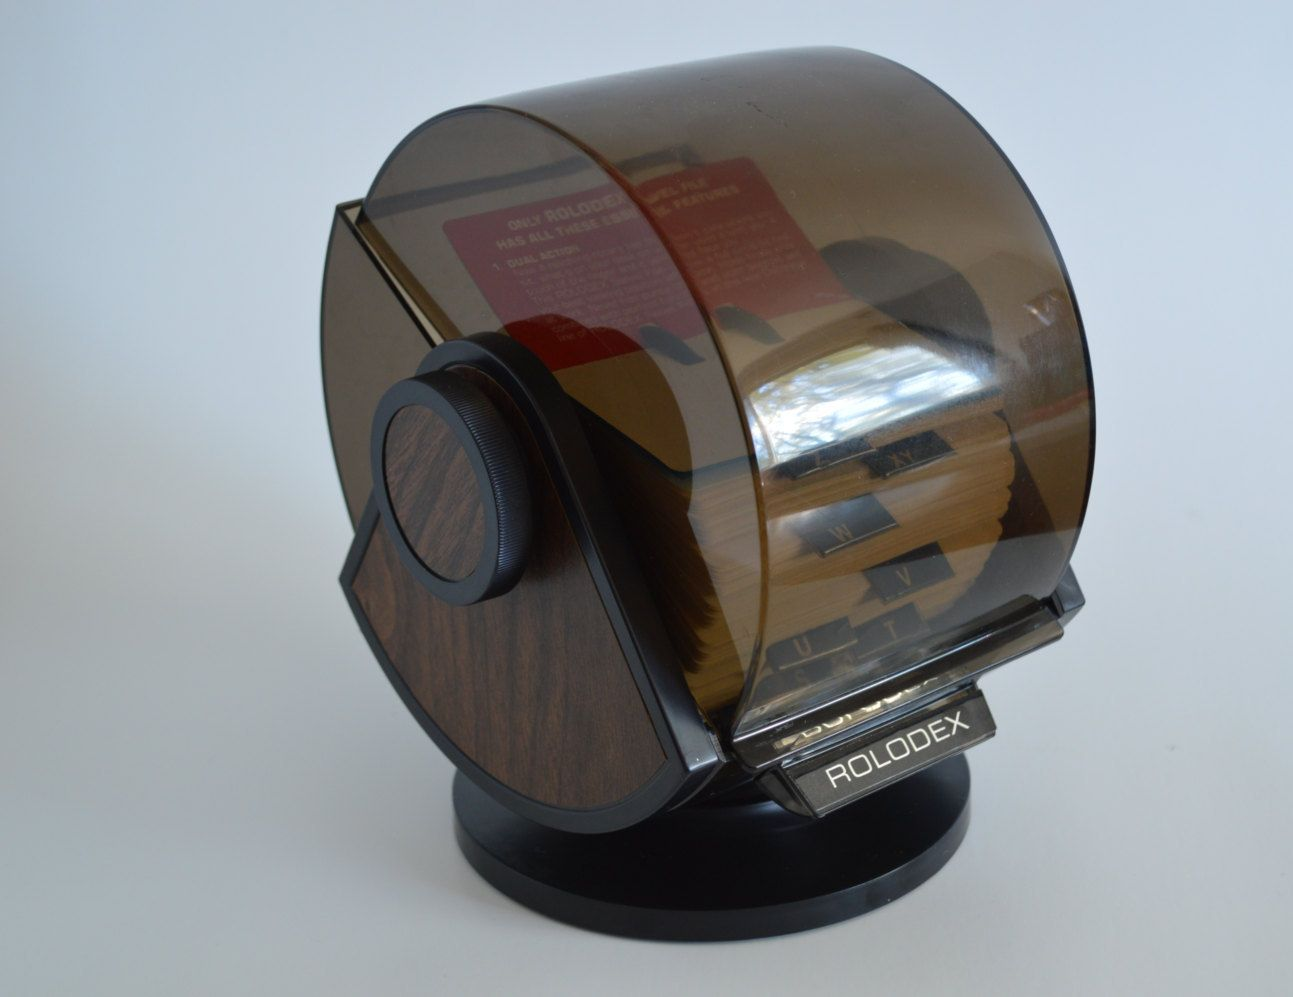 Vintage Rolodex Covered Card File Rotary Swivel Phone Address Business Card Holder Faux Wood With Smokey Cover Rolodex Card Files Business Card Holders